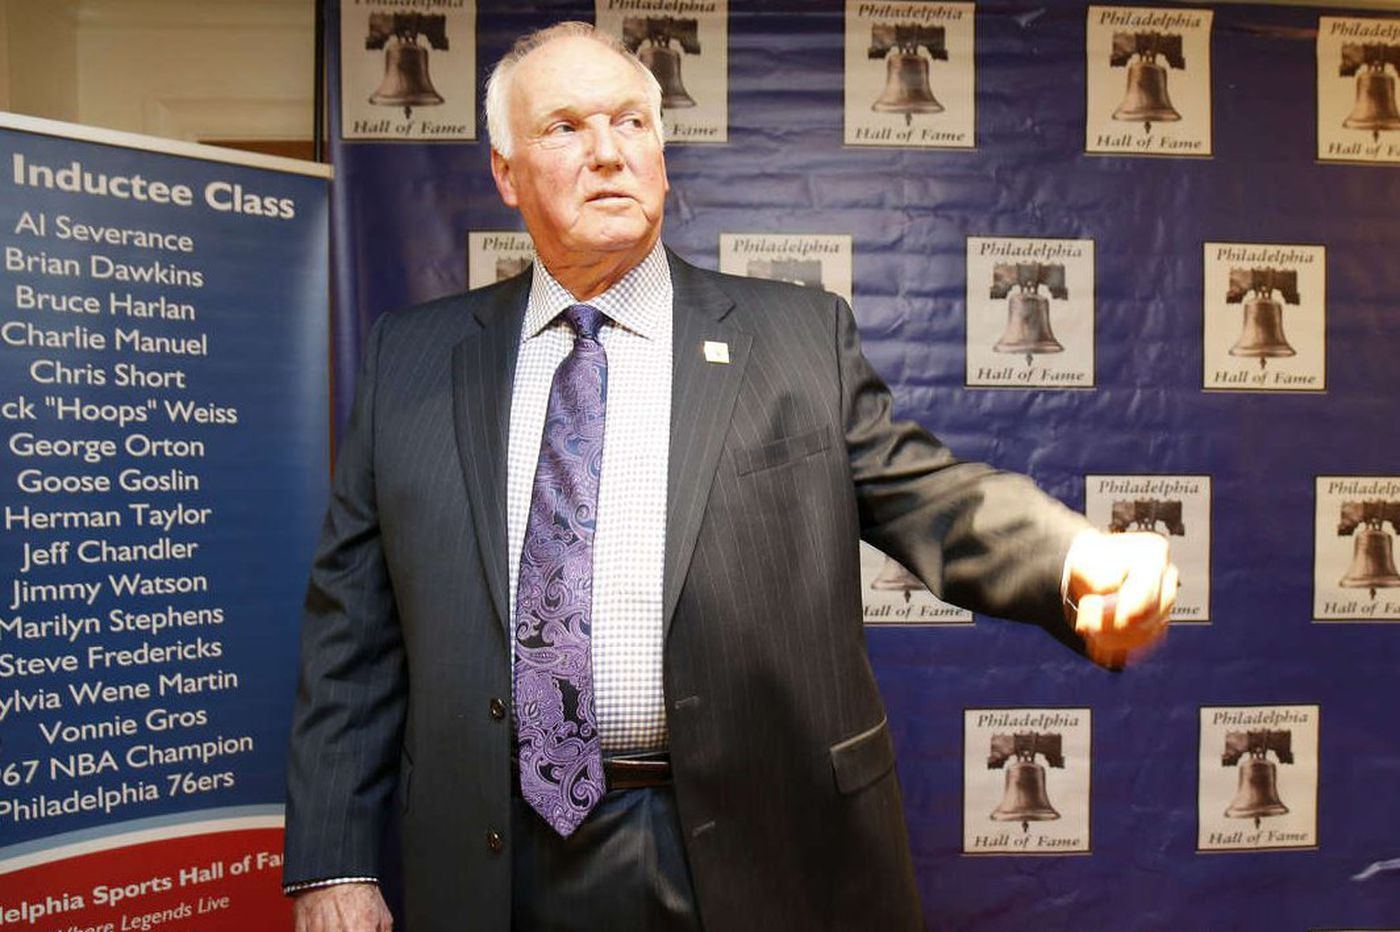 Charlie Manuel says Eagles can win, like his Phillies | Marcus Hayes